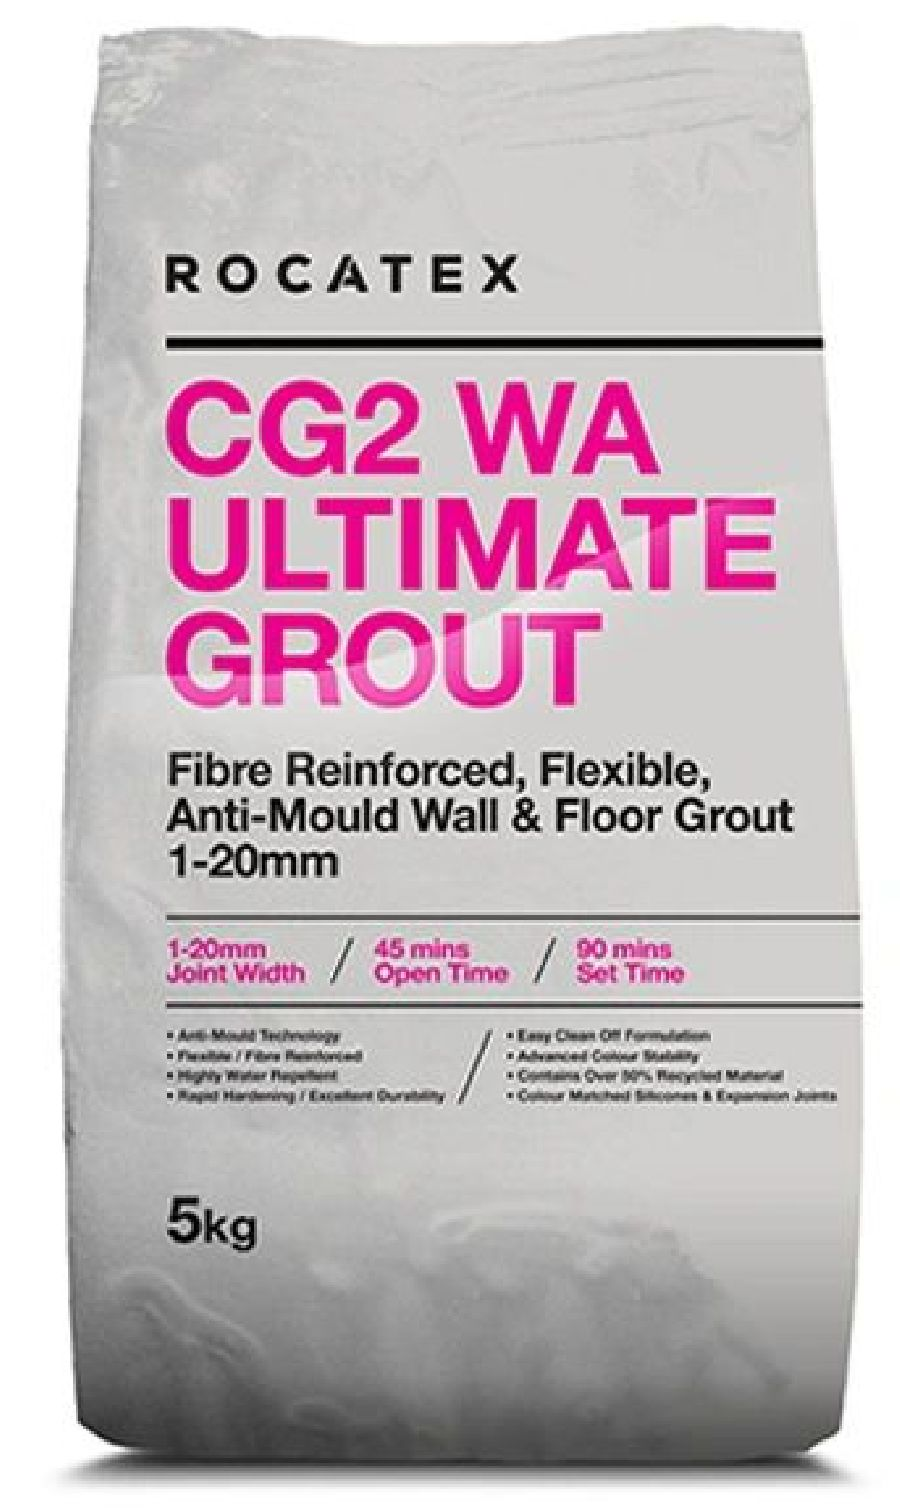 Rocatex Grout CG2 WA...